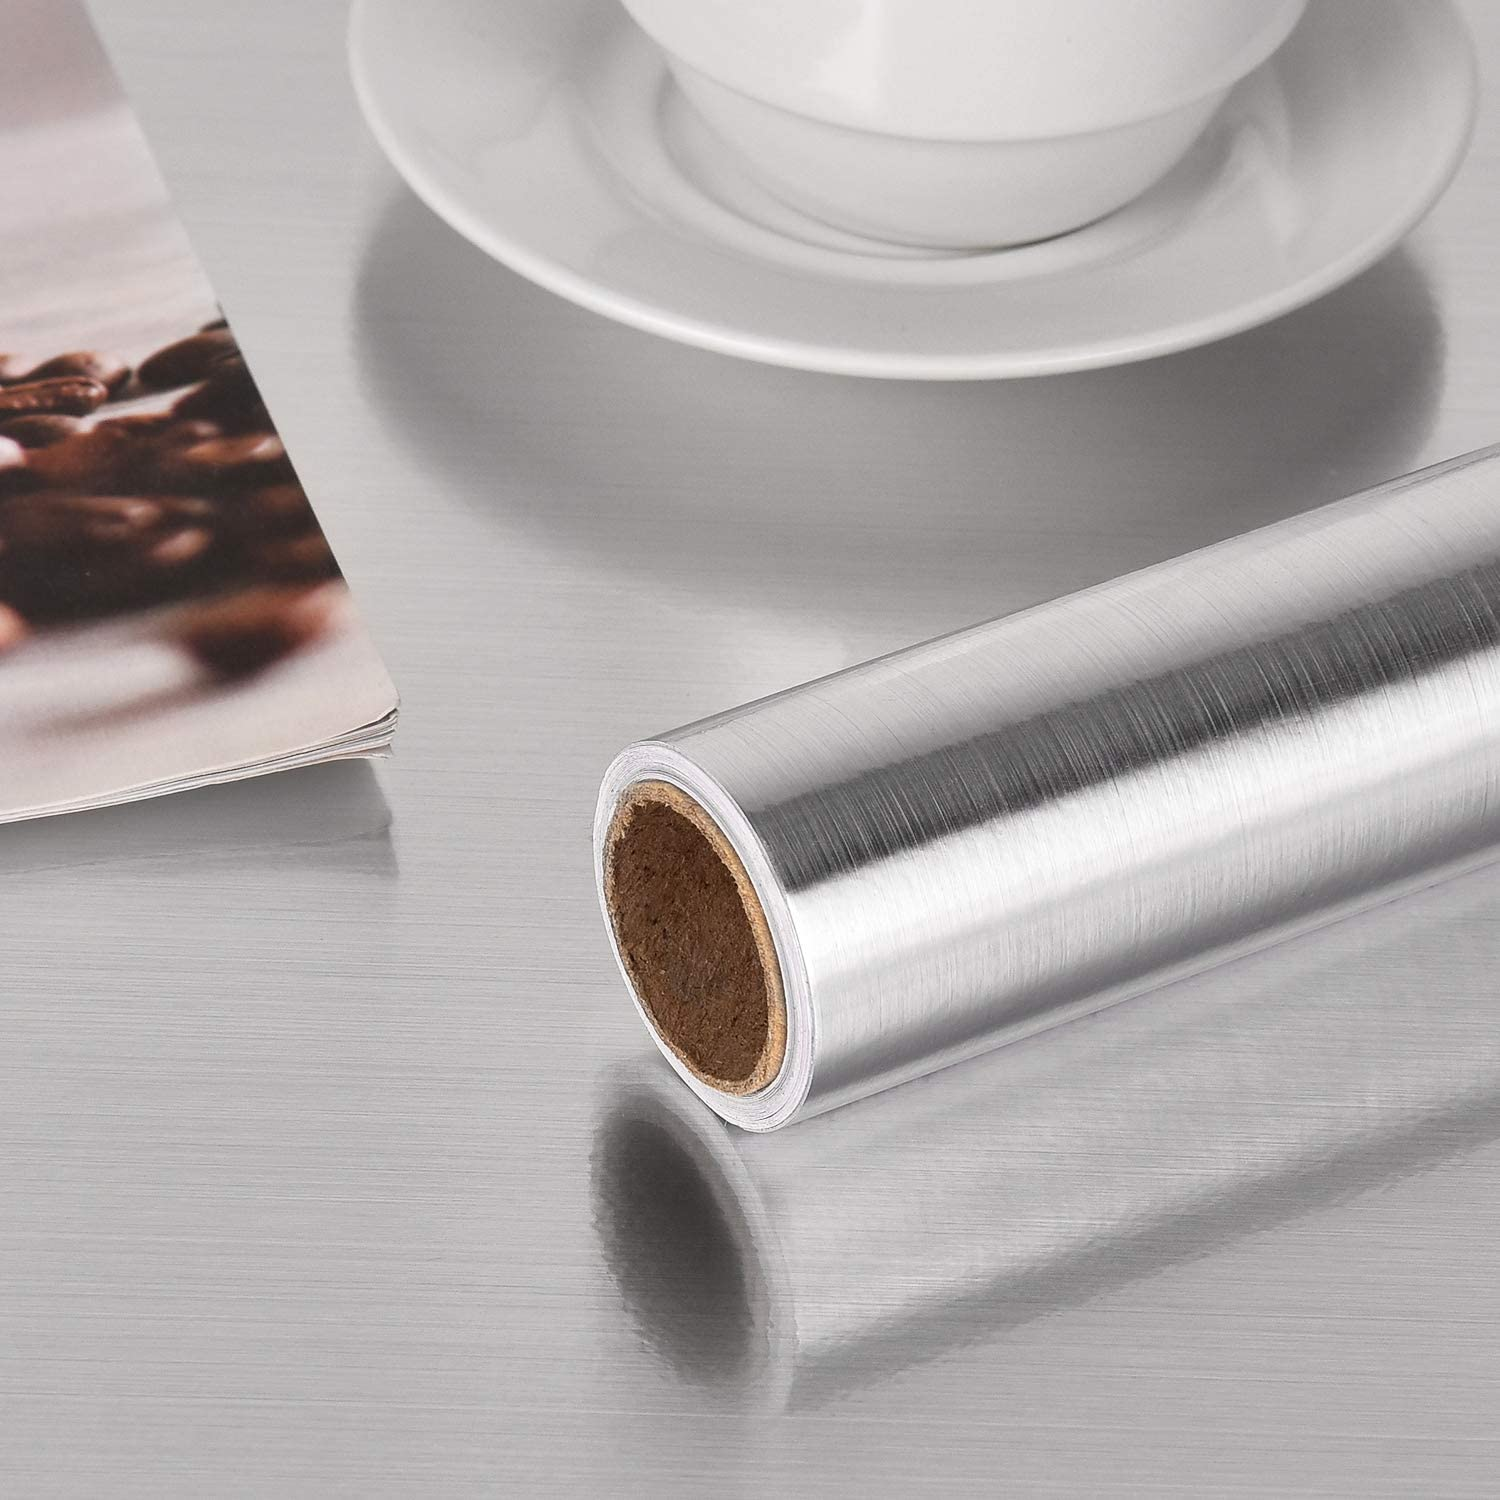 "Symoden 15.8"" x 78.8"" Silver Stainless Steel Contact Paper Brushed Nickel Peel and Stick Wallpaper Self Adhesive Contact Paper Metal Look Wallpaper for Countertops Kitchen Cabinets Dishwasher"